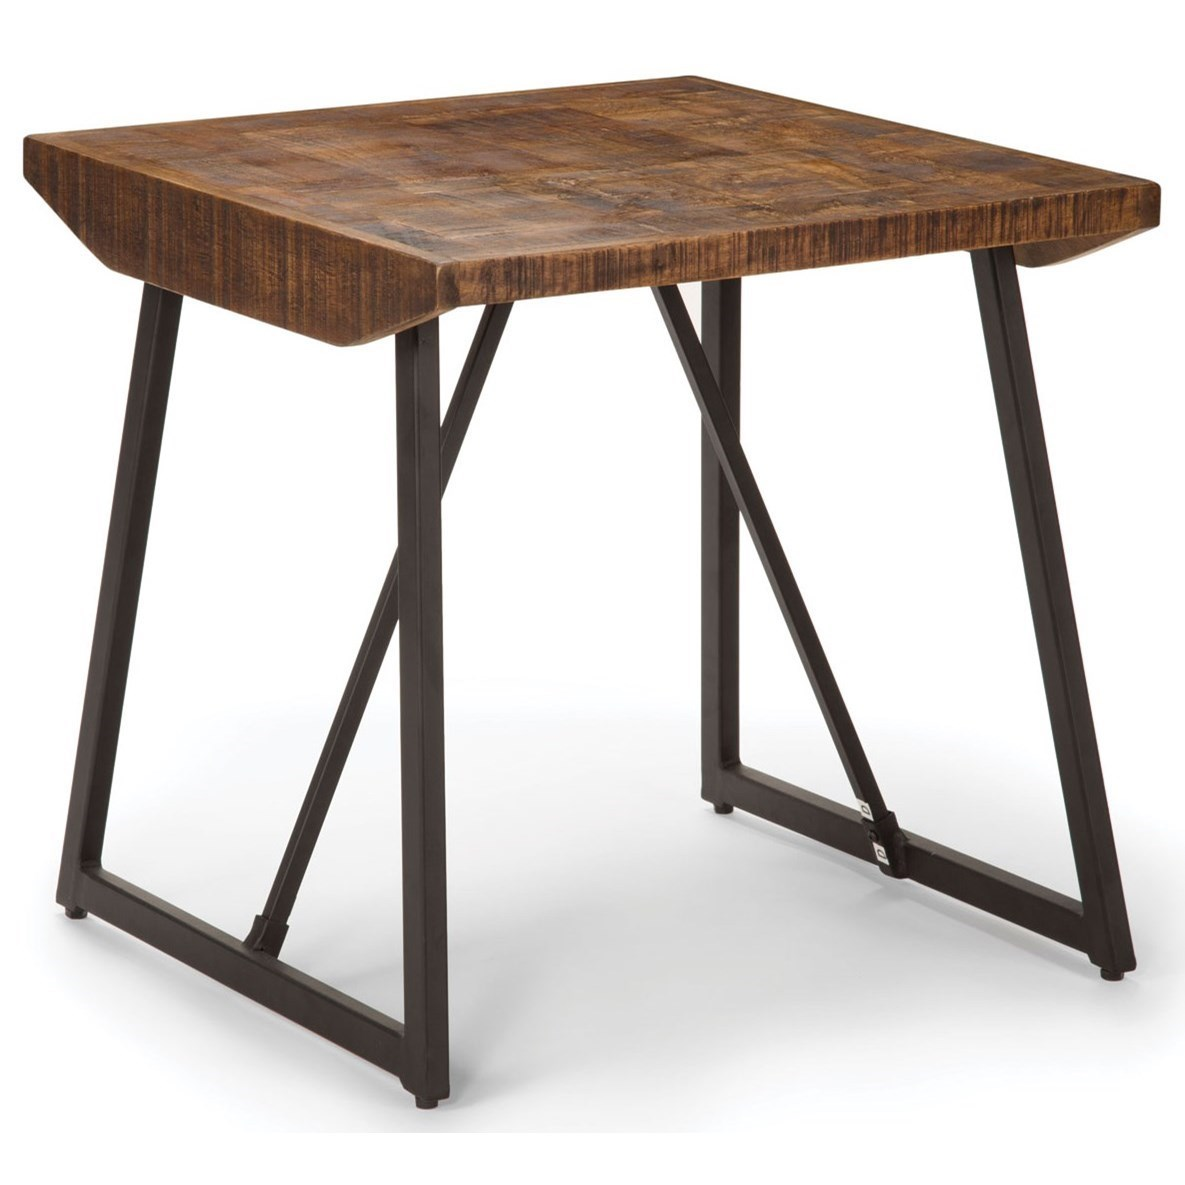 Rustic Industrial End Table with Parquet Pattern Wood Top